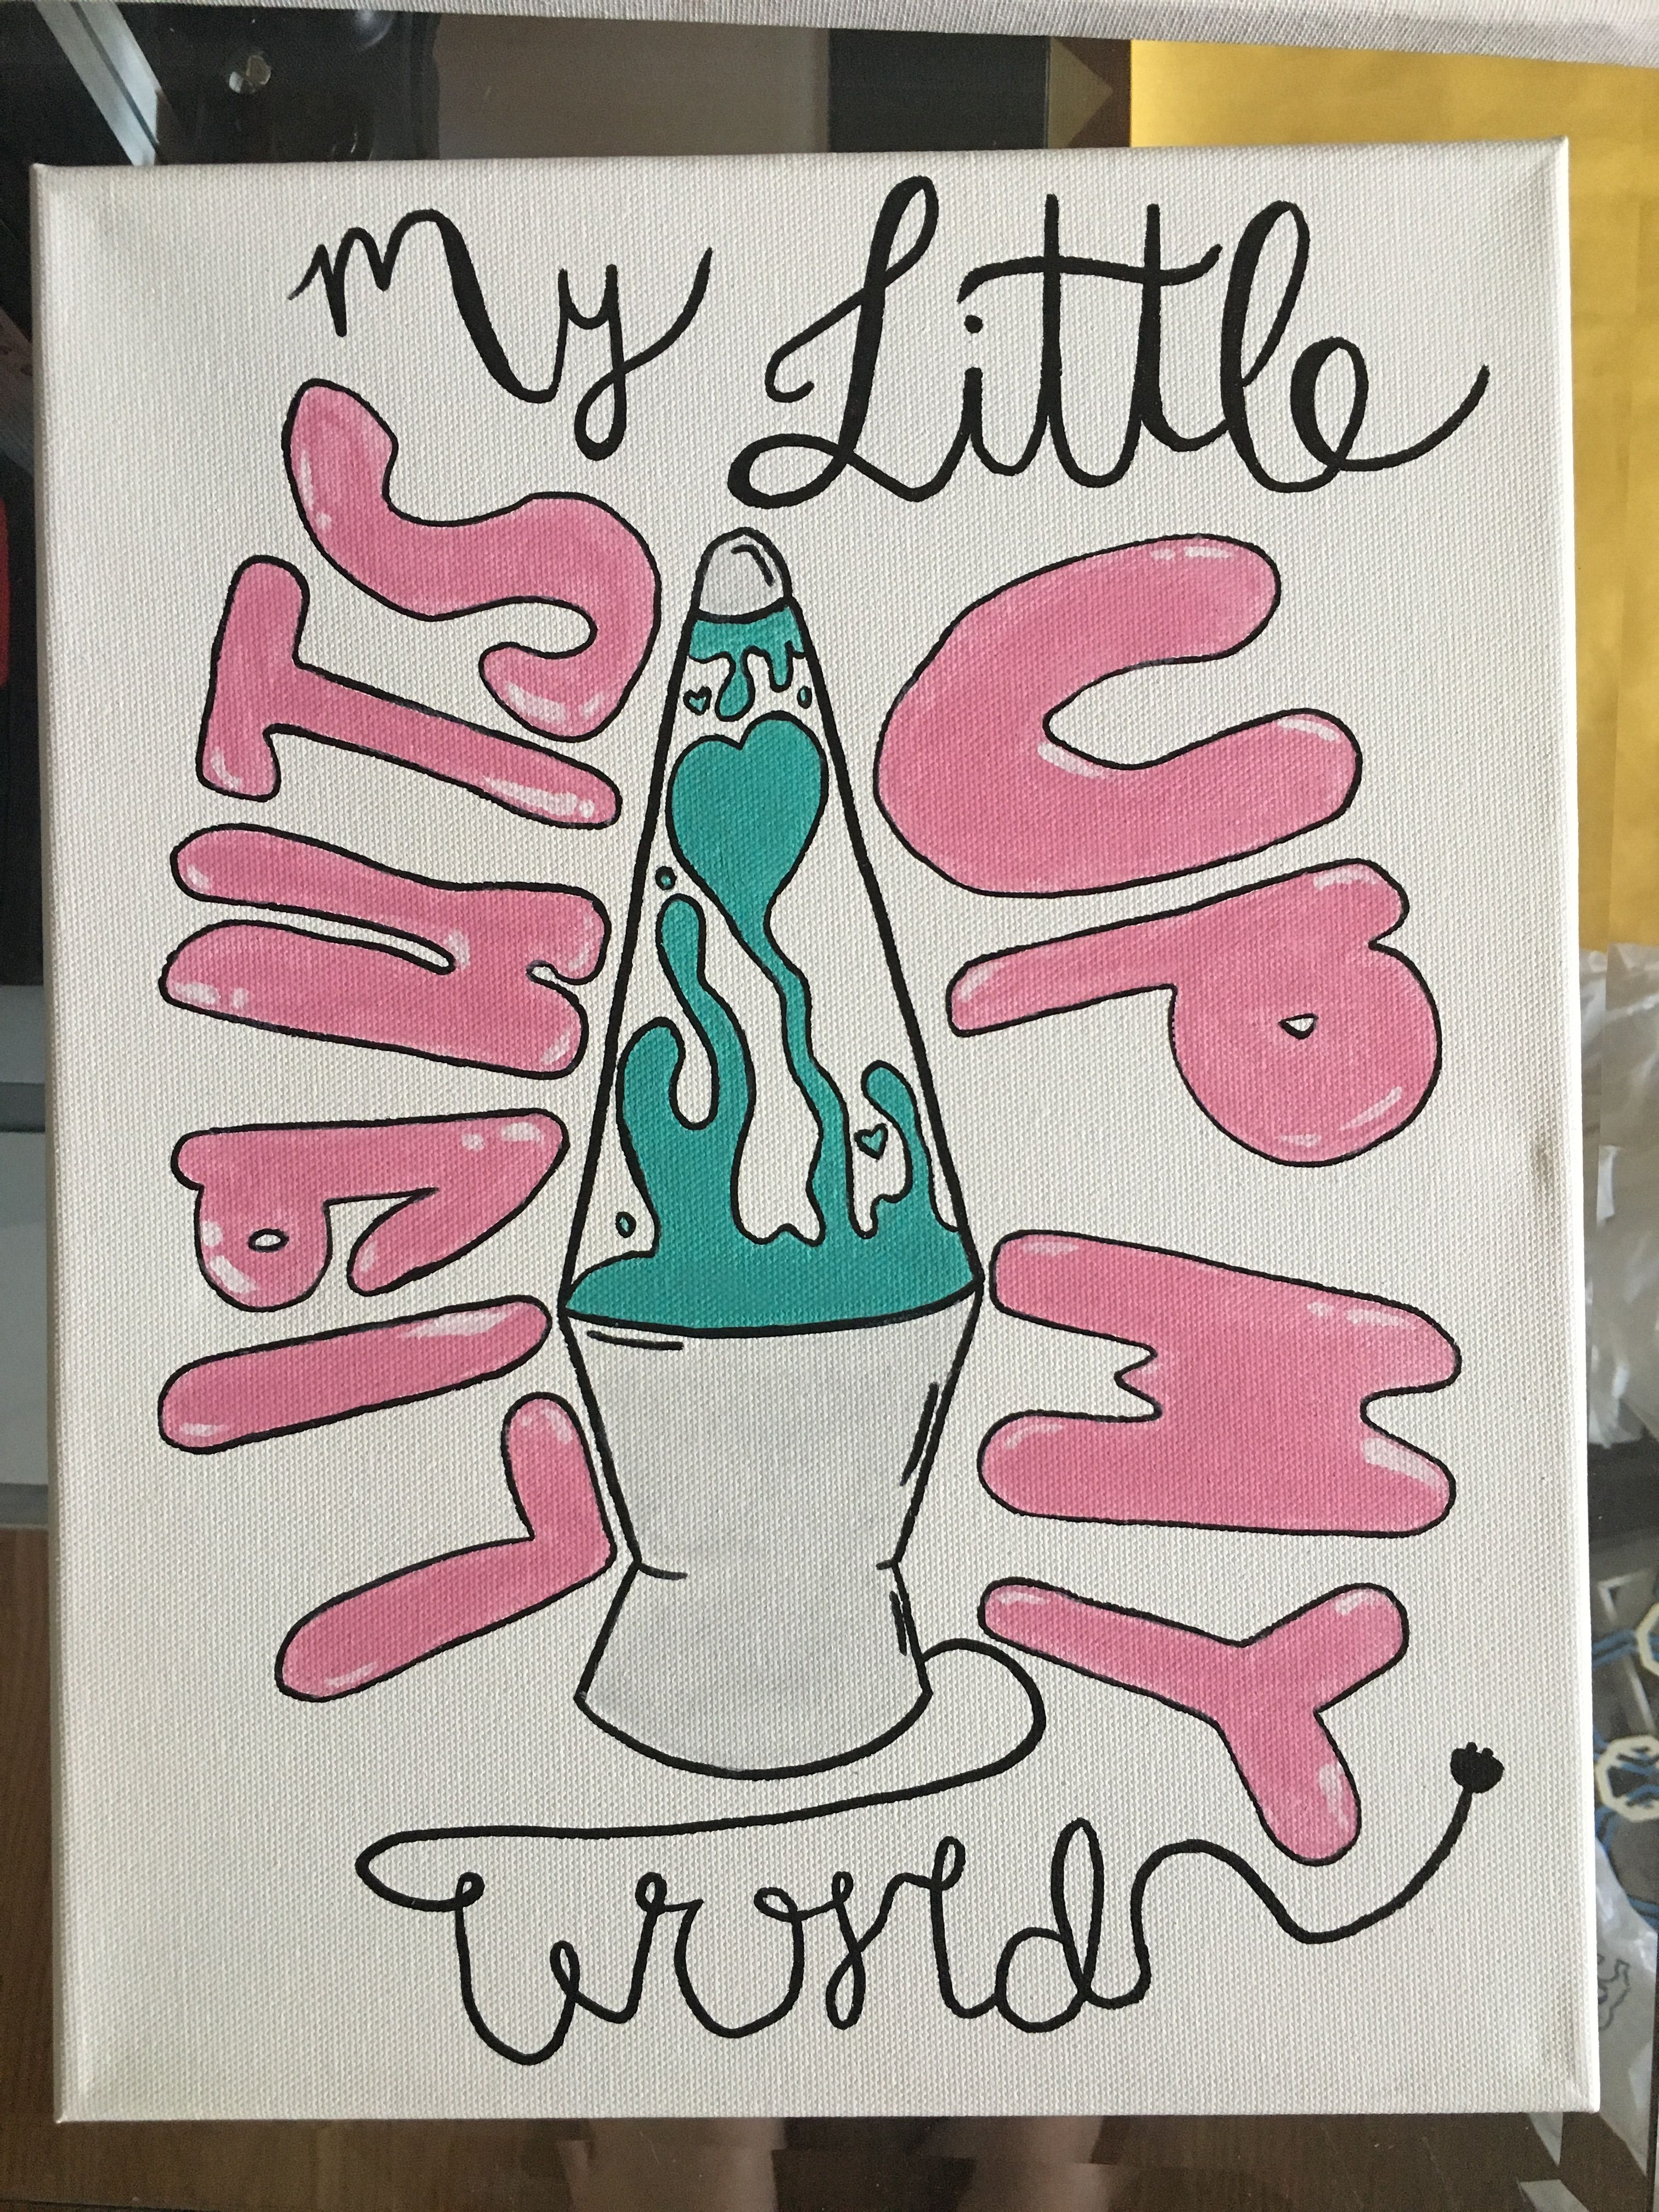 Big Little Reveal Spoils Idea sorority spirit group canvas idea #biglittlecanvas